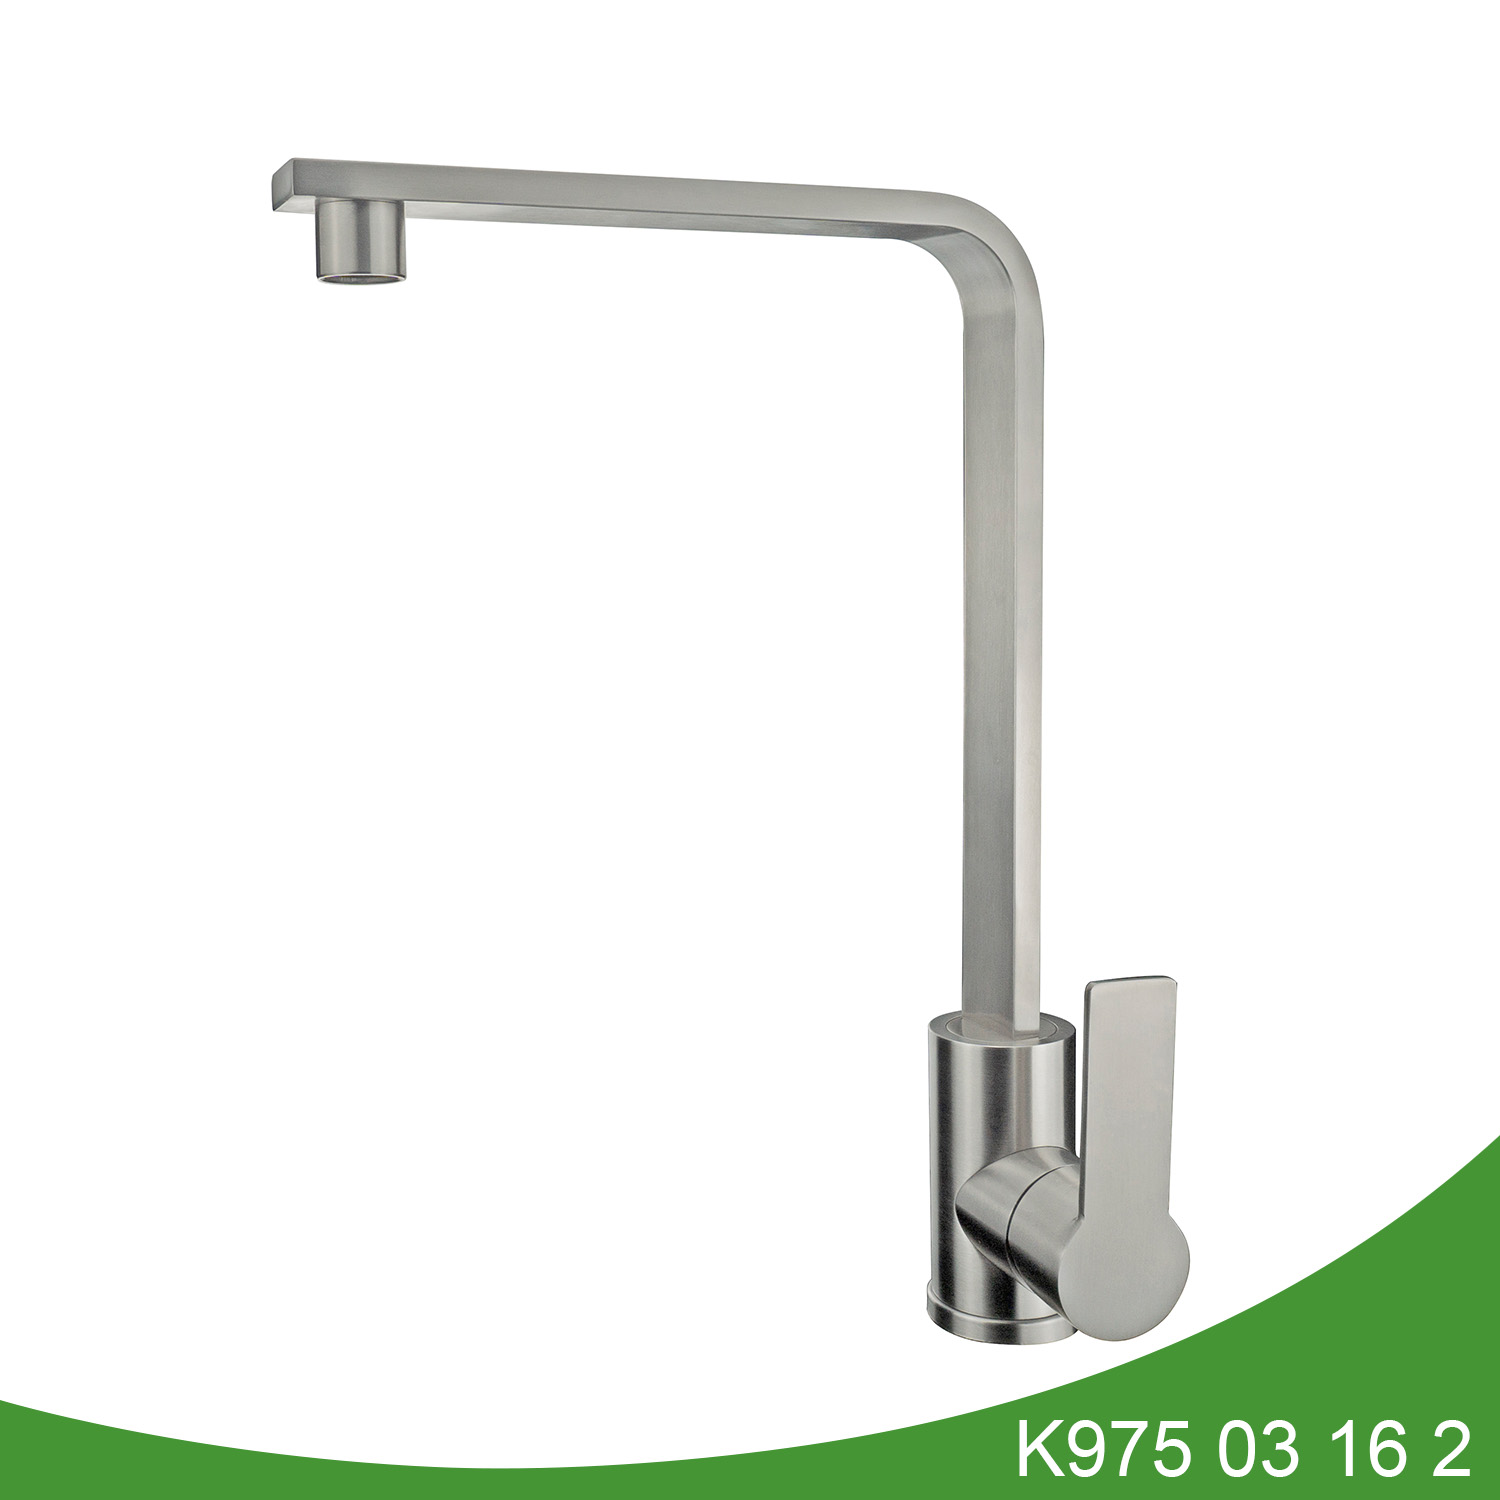 Stainless steel single handle kitchen tap K975 03 16 2